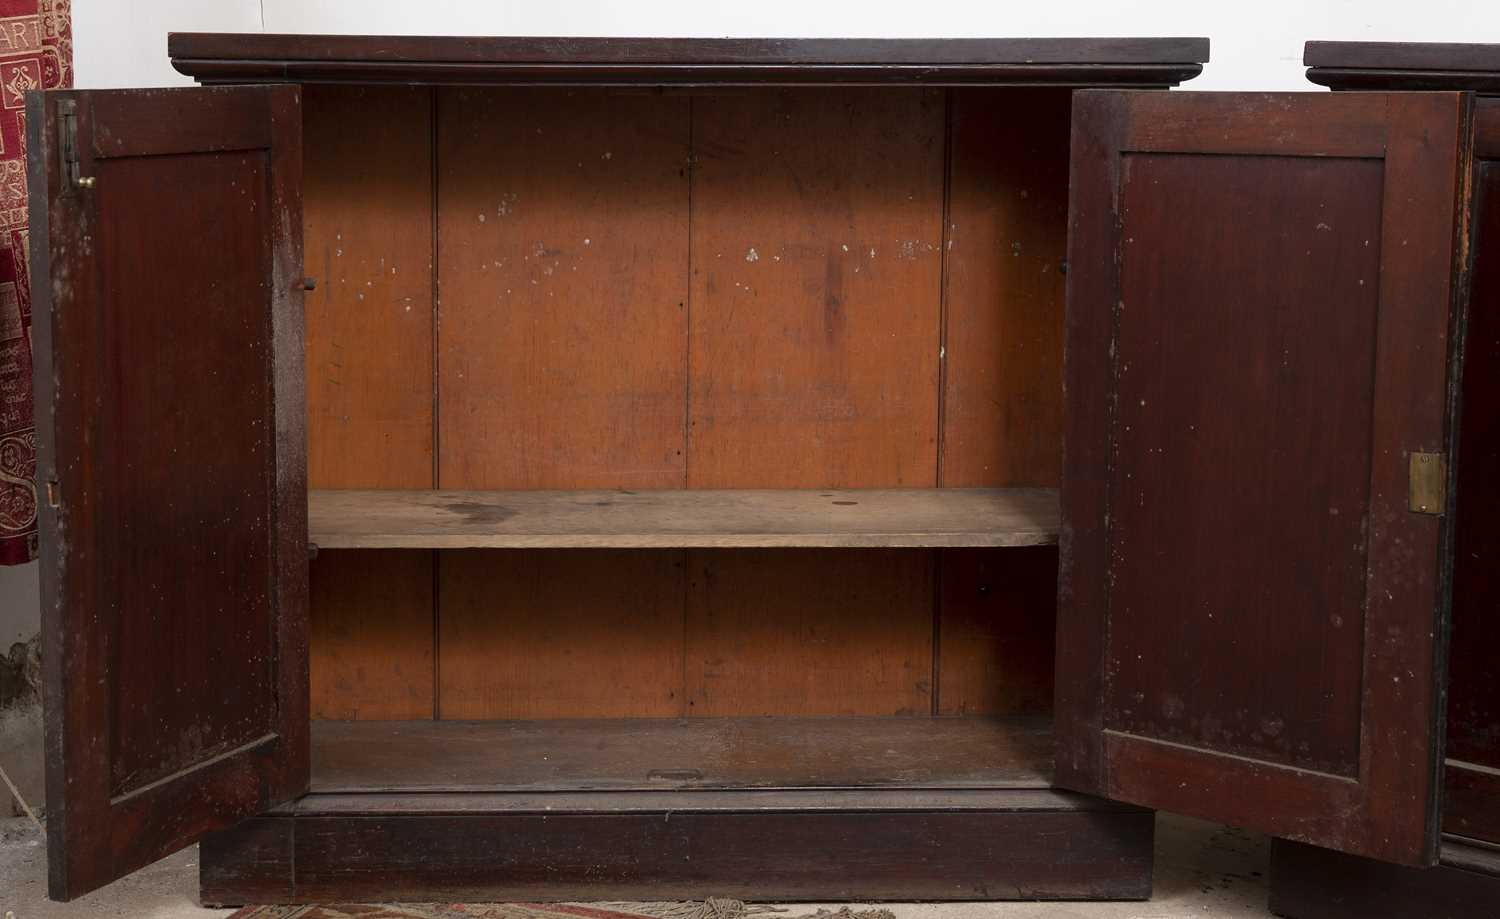 A pair of 19th century mahogany cupboards, each with a pair of panelled doors enclosing shelving, on - Image 4 of 4